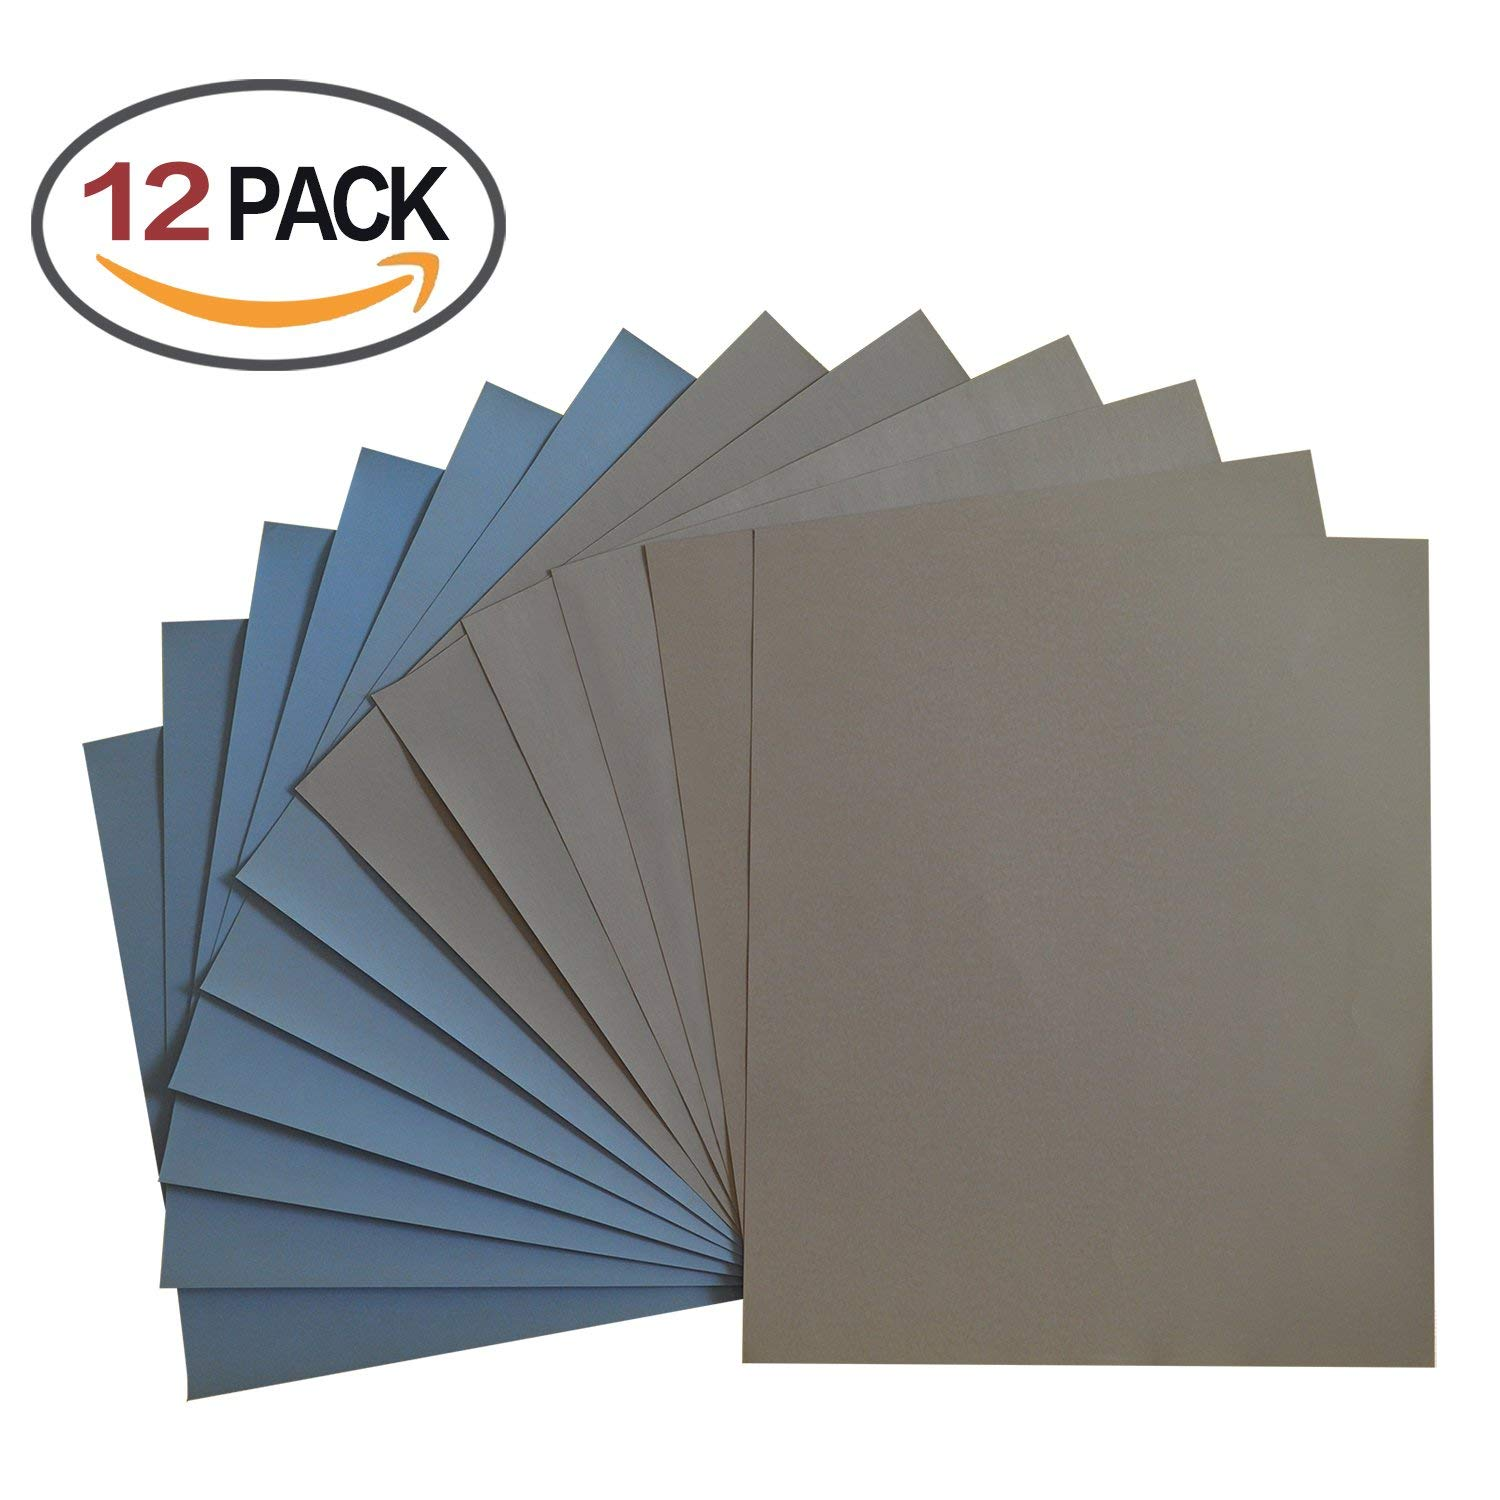 Automotive Pack Of 10 Sanding Sheets Abrasive Wet And Dry Paper 2000 Grit Car Dice